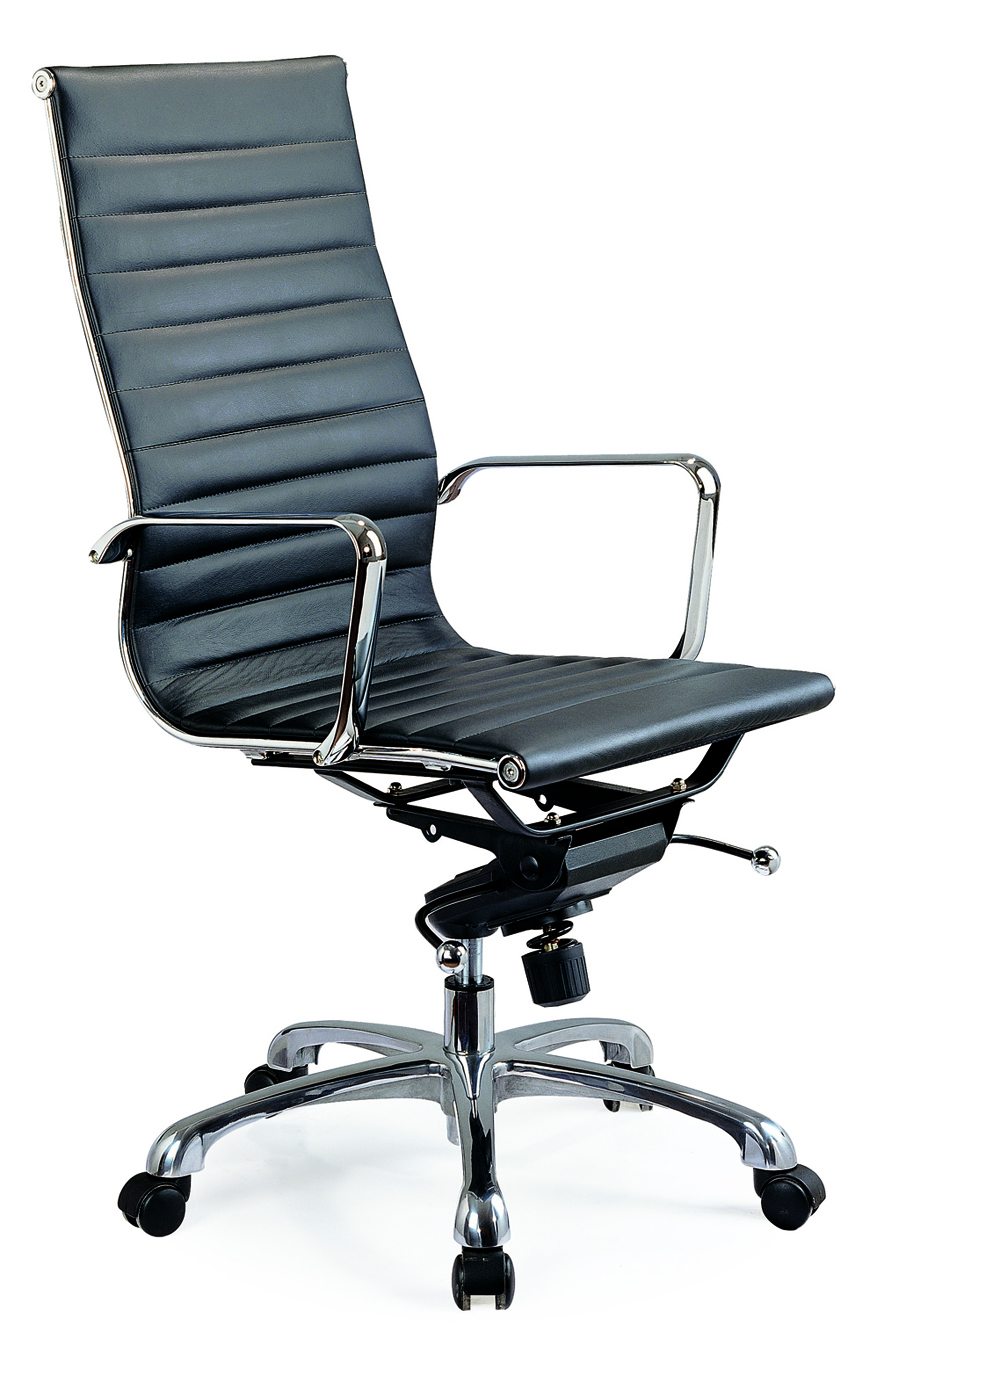 Comfy Office Chairs Comfy High Back Office Chair Black By J M